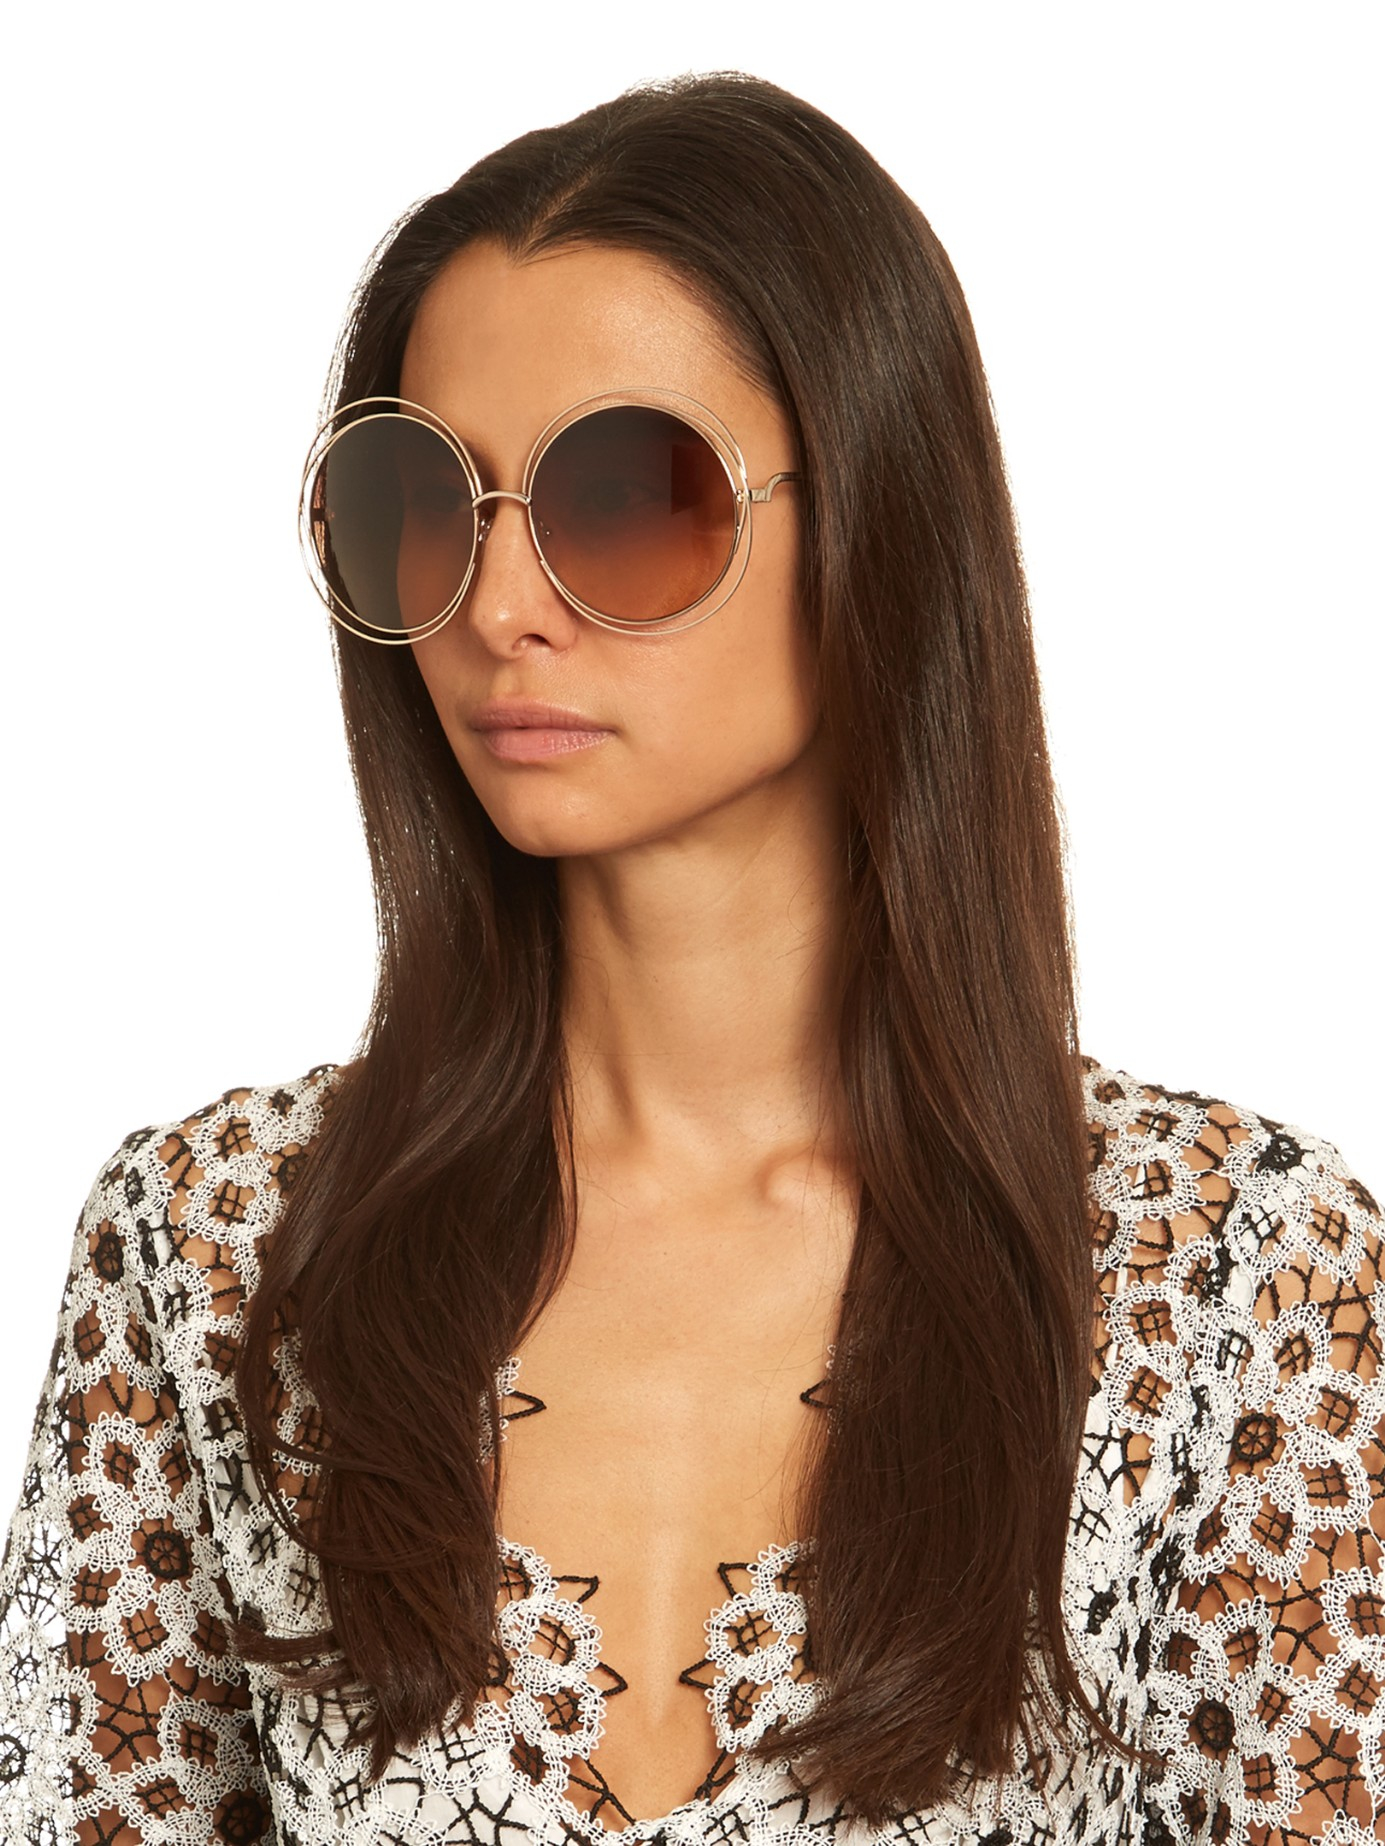 chloe sunglasses g8im  chloe sunglasses carlina